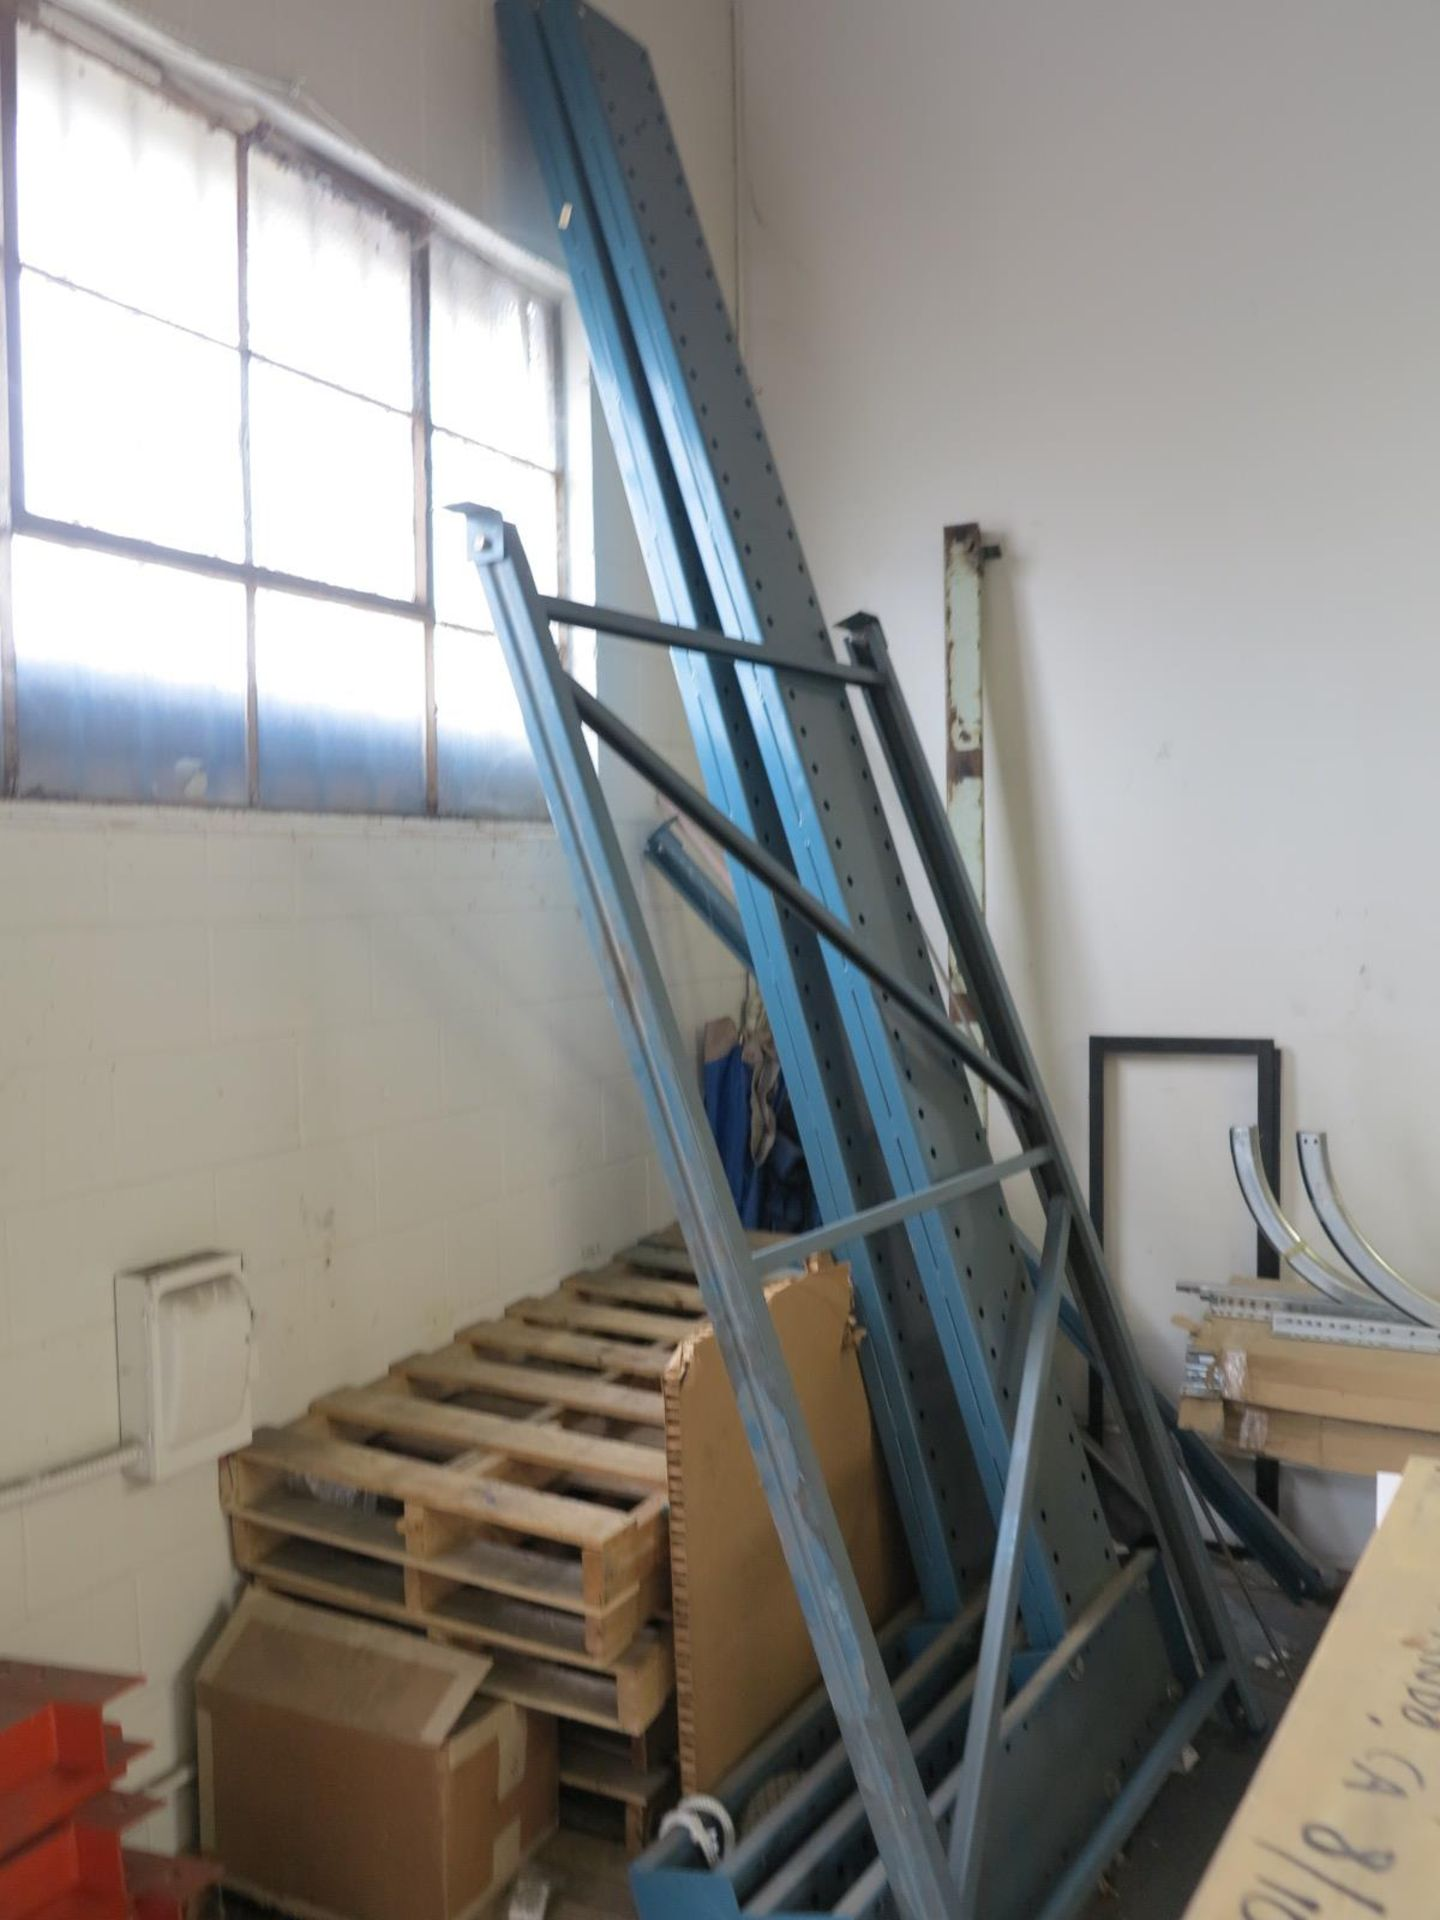 LOT - (1) SECTION OF CANTILEVER RACK, IN CORNER